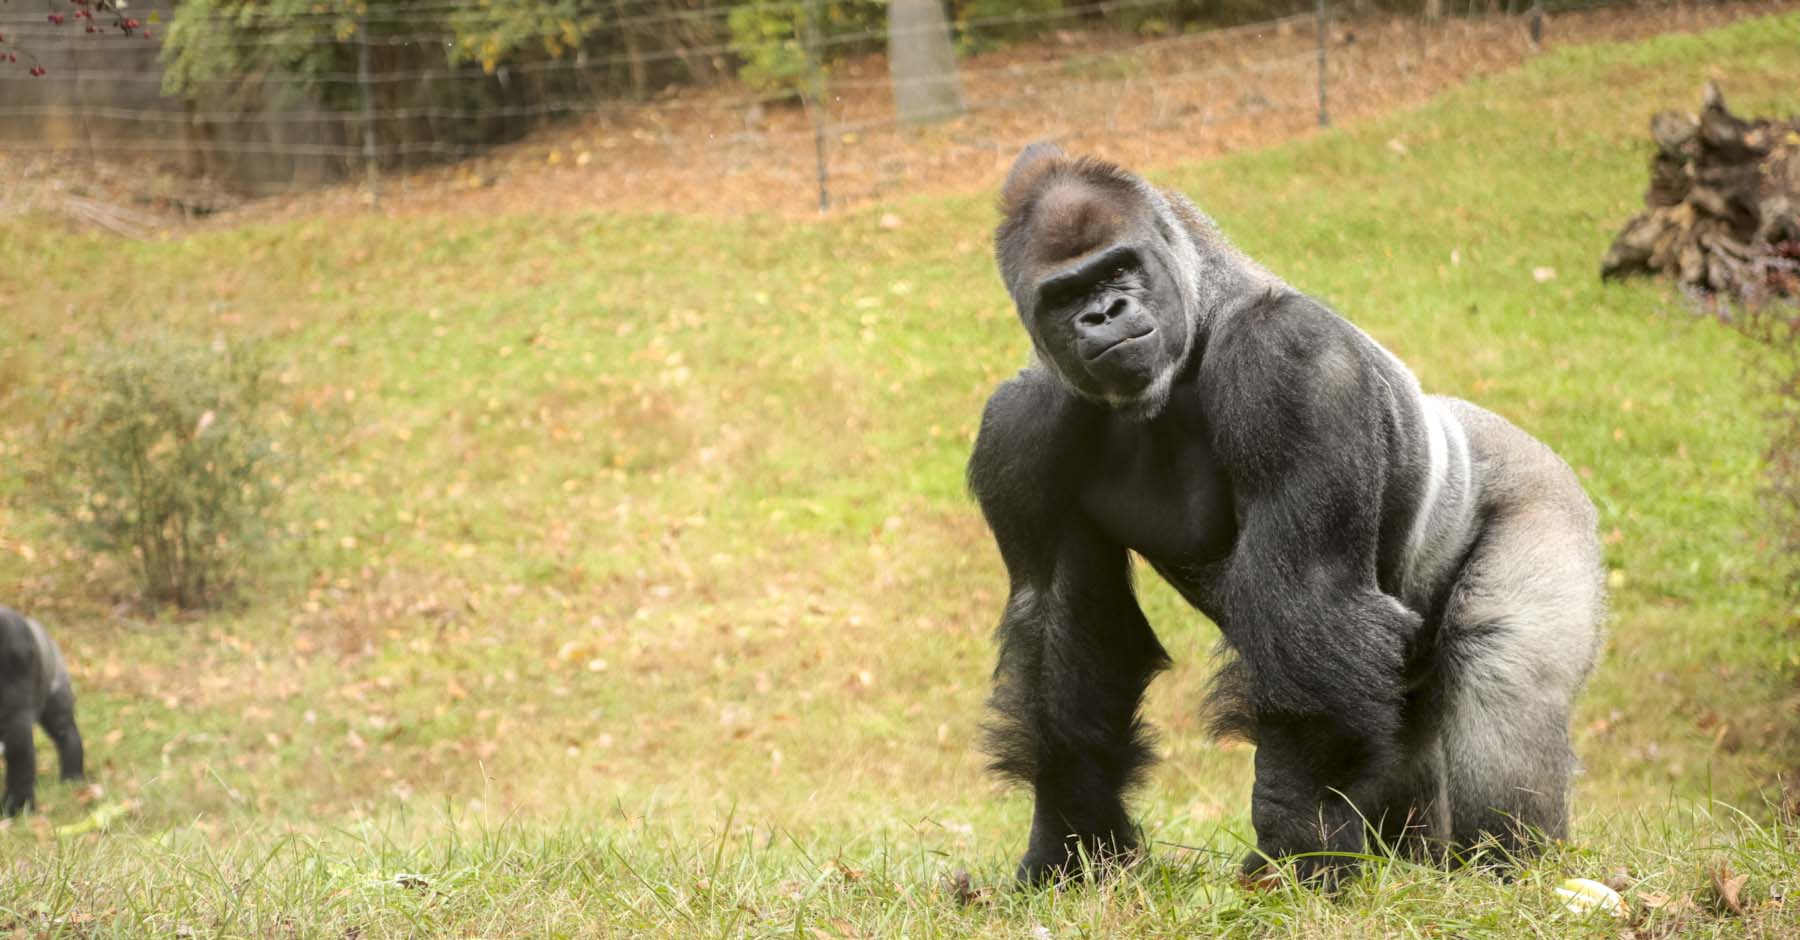 Bantu, an 18-year-old male silverback who sired Ubuntu and Obi, is the father of the new gorilla baby due in mid-September. This will be his third offspring.